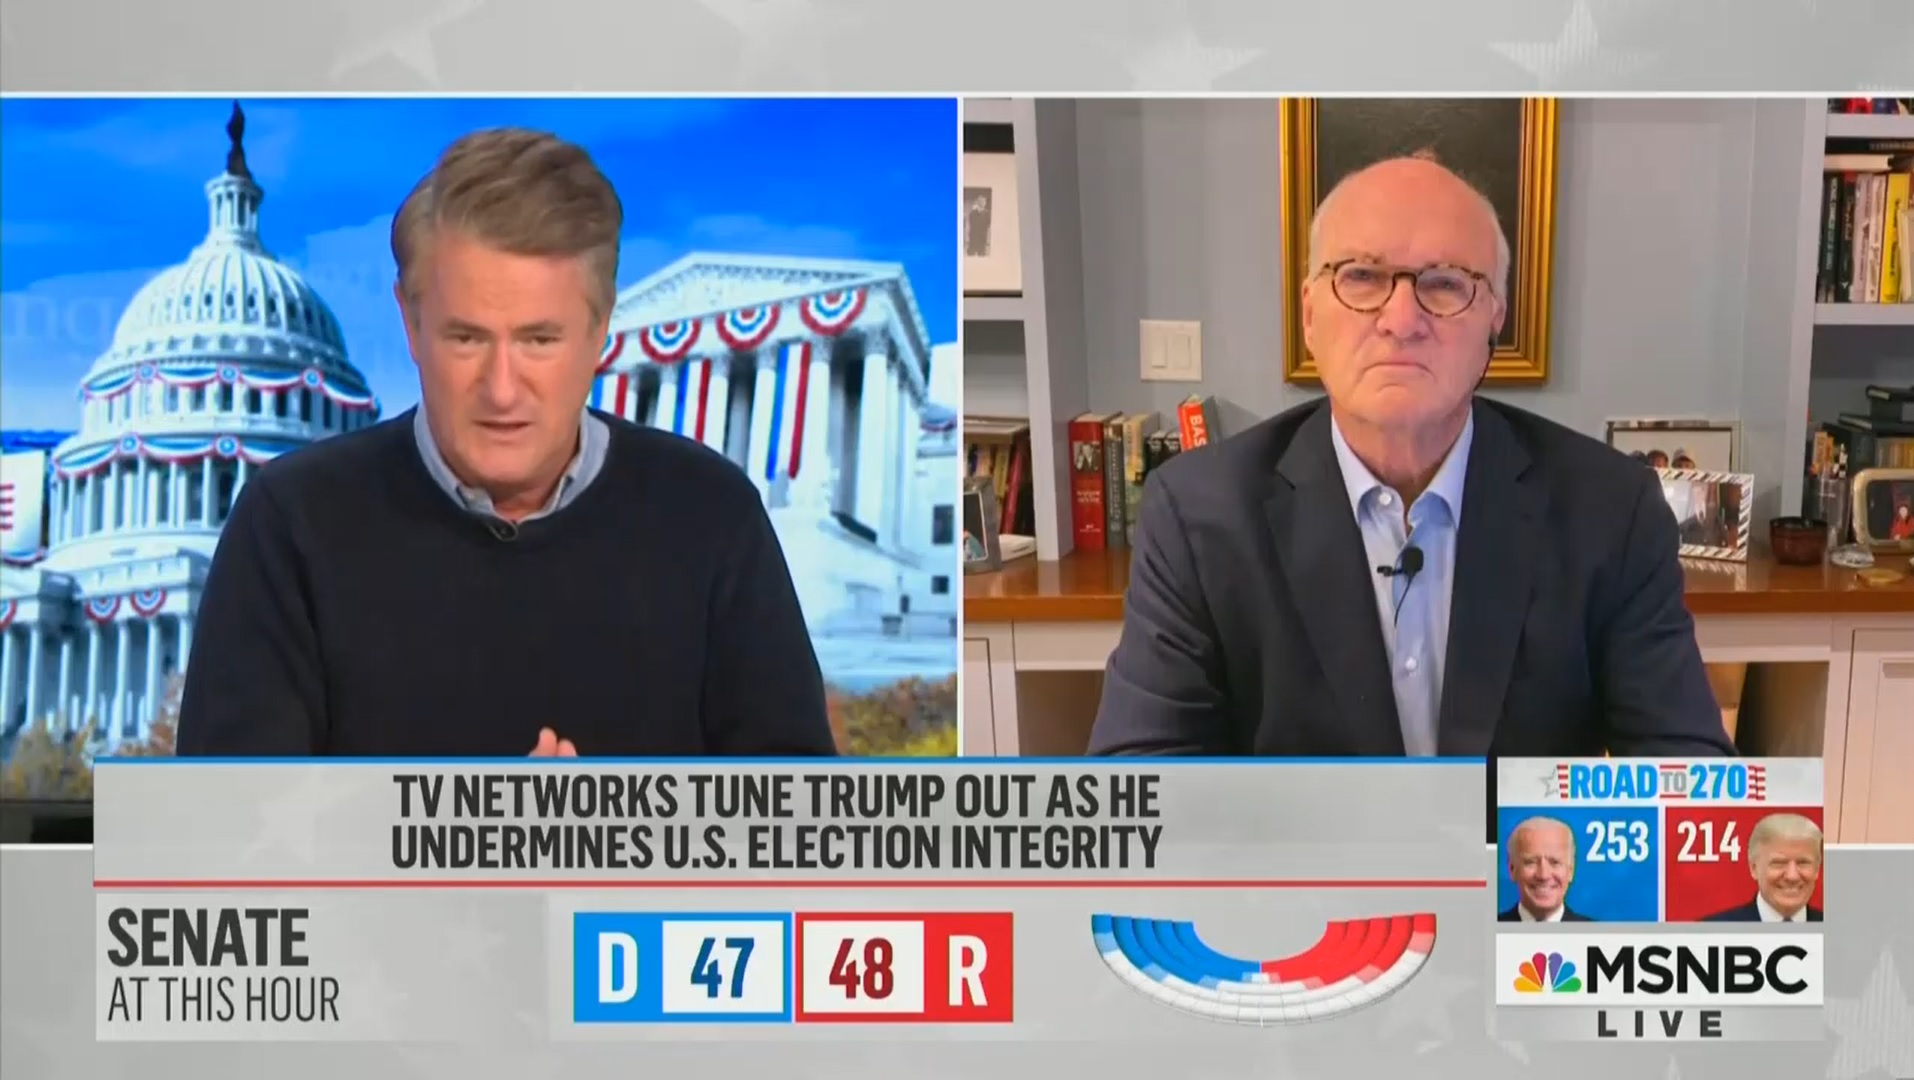 Joe Scarborough Compares Trump to Stalin, Says 'Pathetic' Statement 'Intended to Foment Violence'